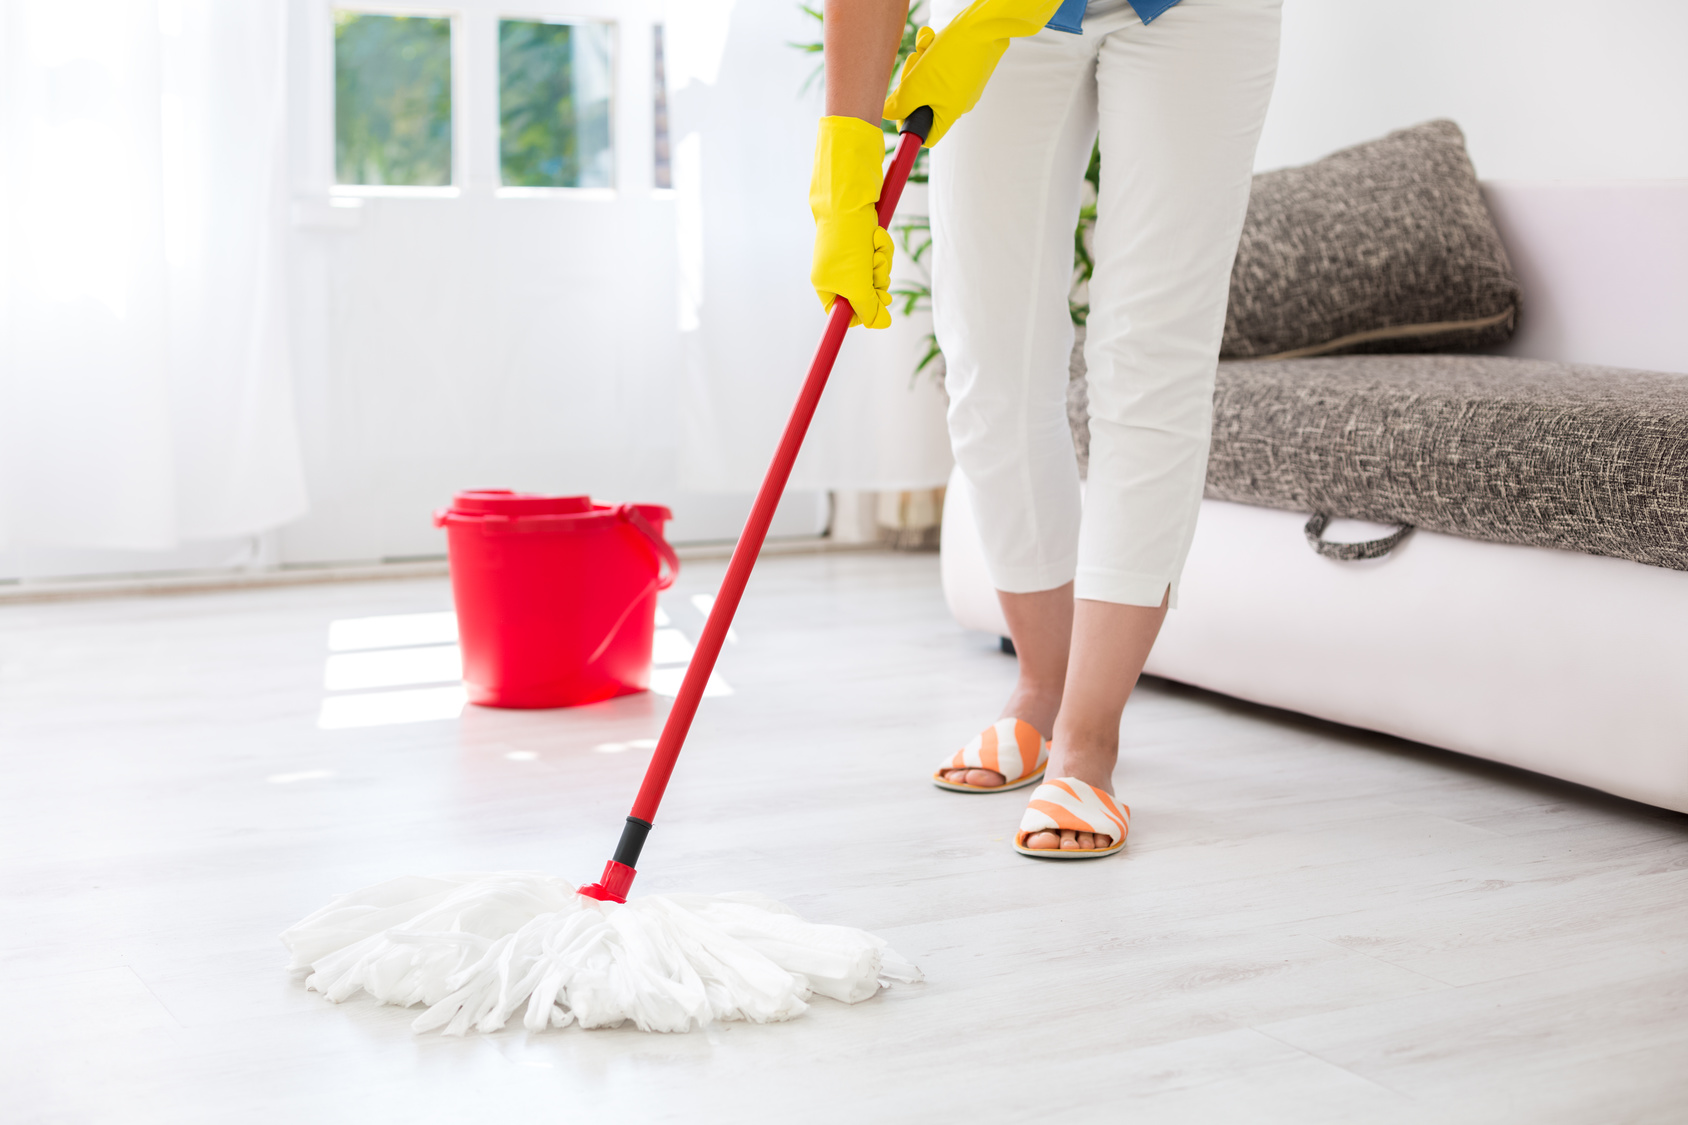 Event party cleanup